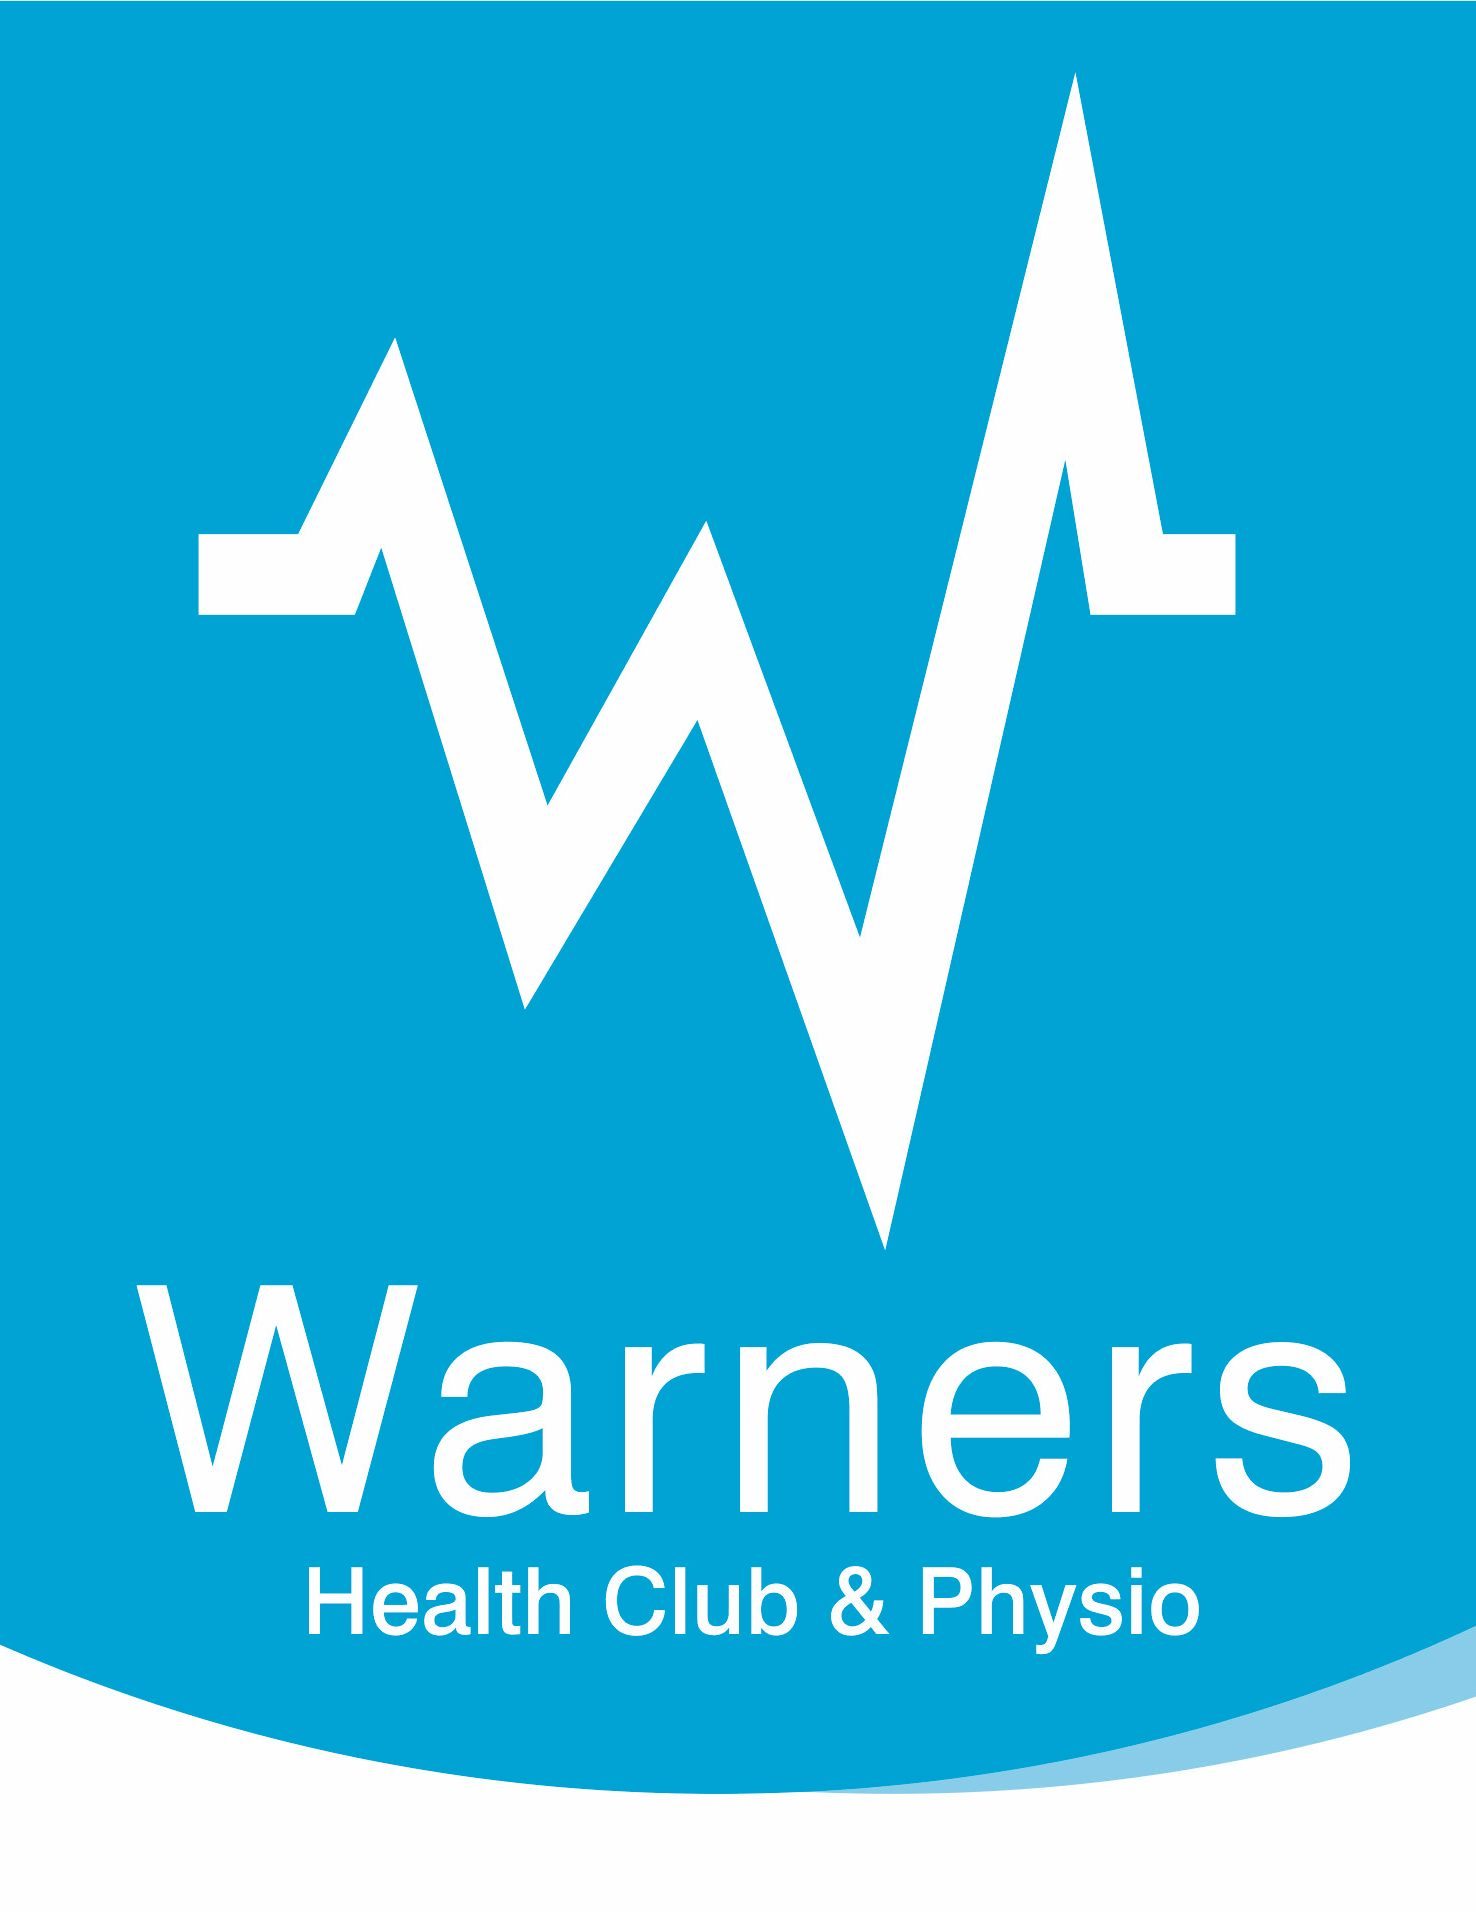 Warners Health Club & Physio